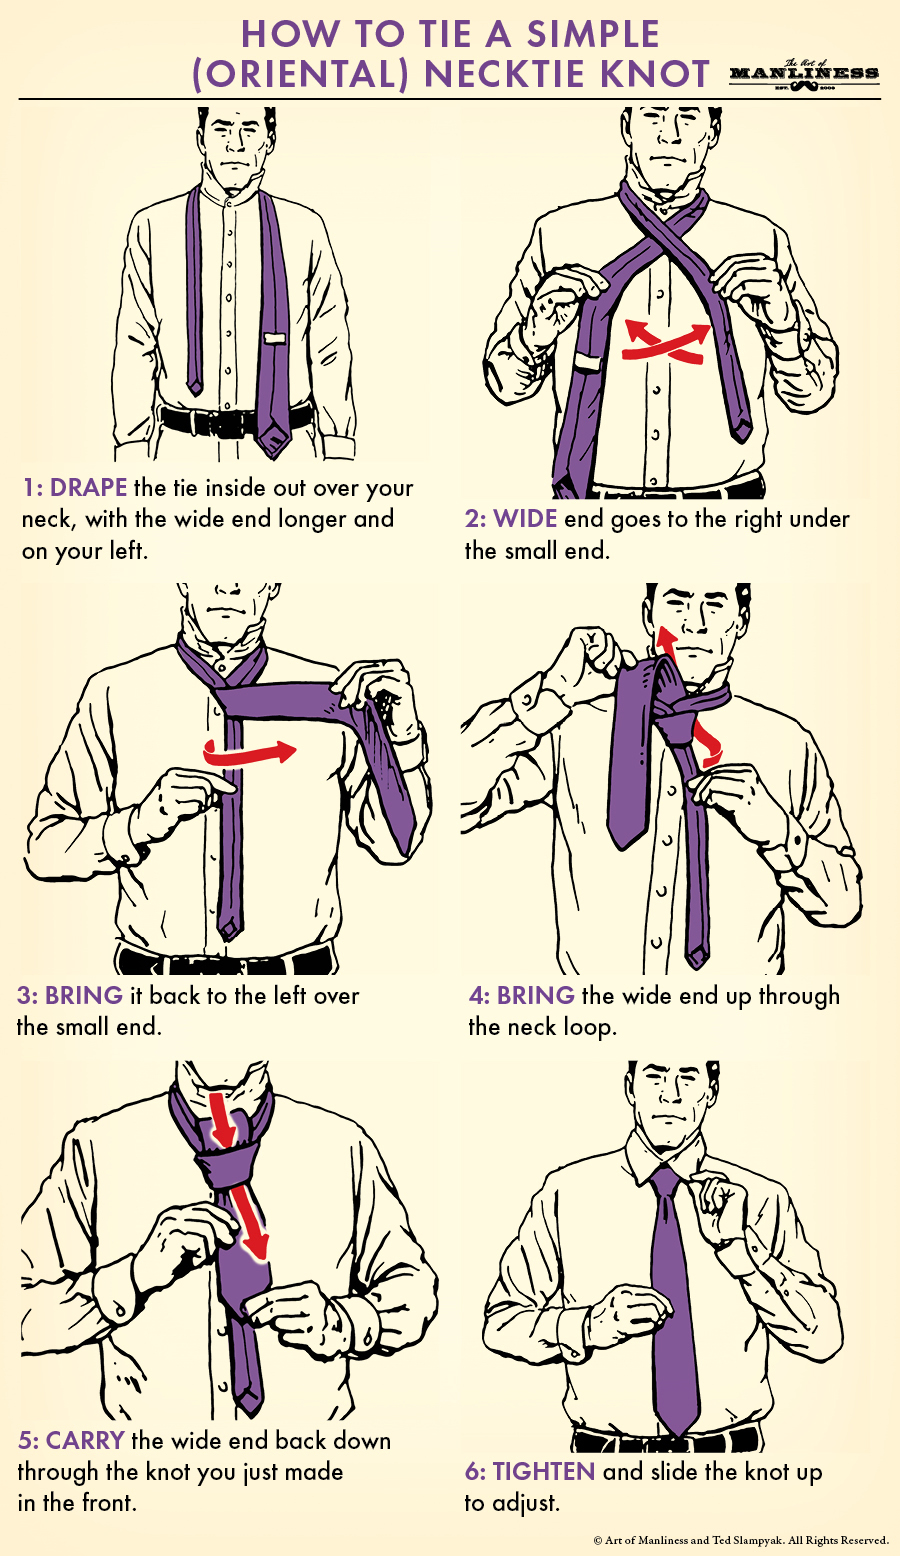 simple necktie knot oriental knot